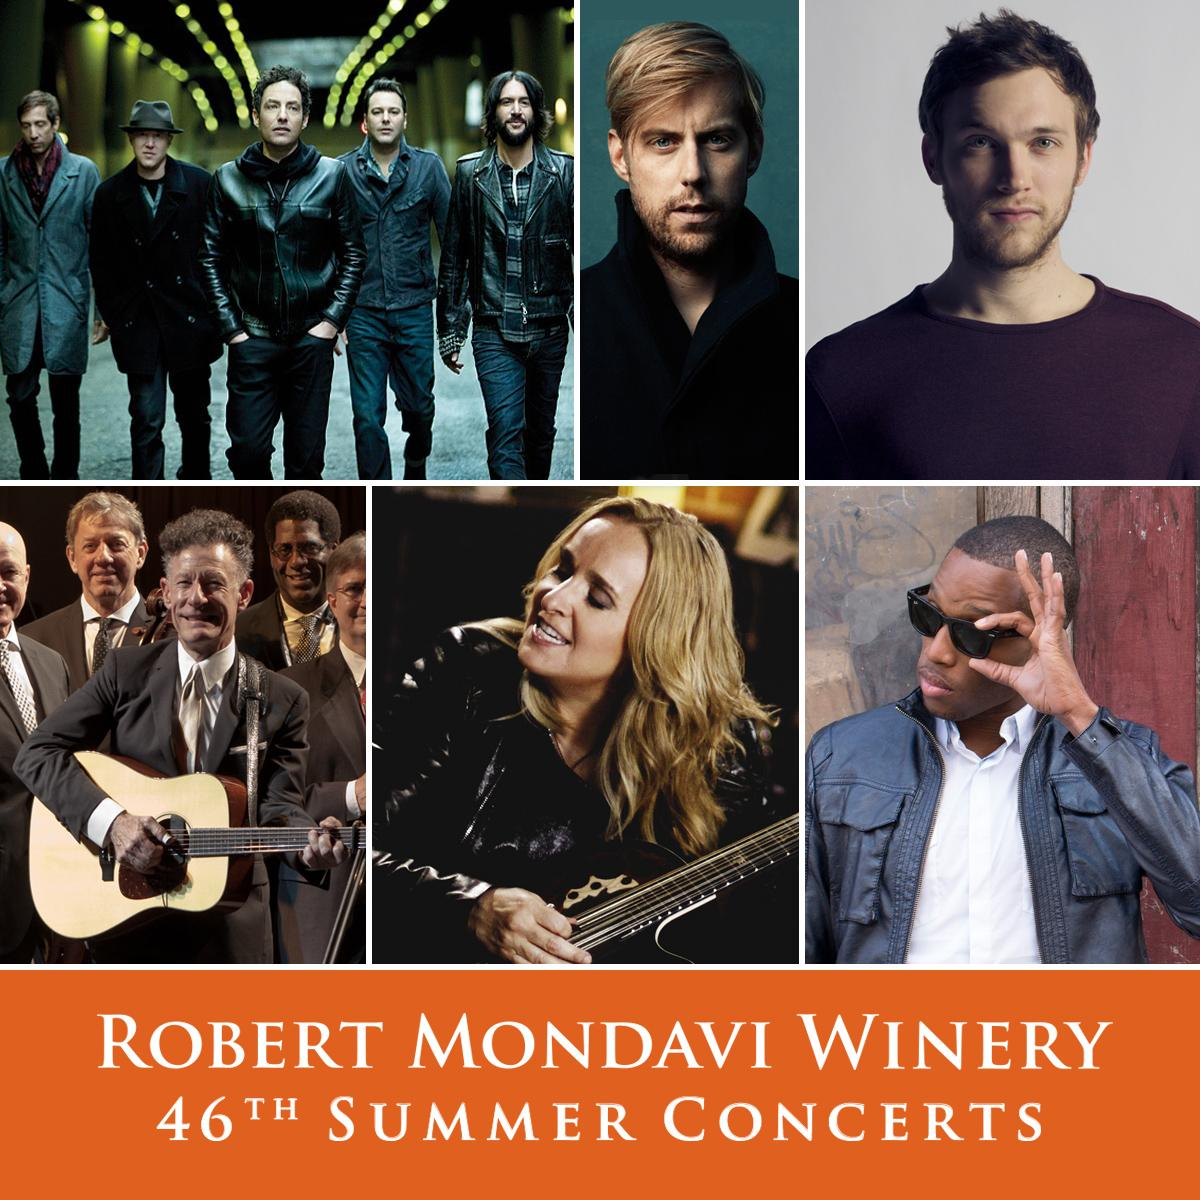 #RobertMondaviWinery Summer Concert Lineup is here: @Phillips @TheWallflowers just announced! http://t.co/JCIPg6G86e http://t.co/aAjWSl5qEk